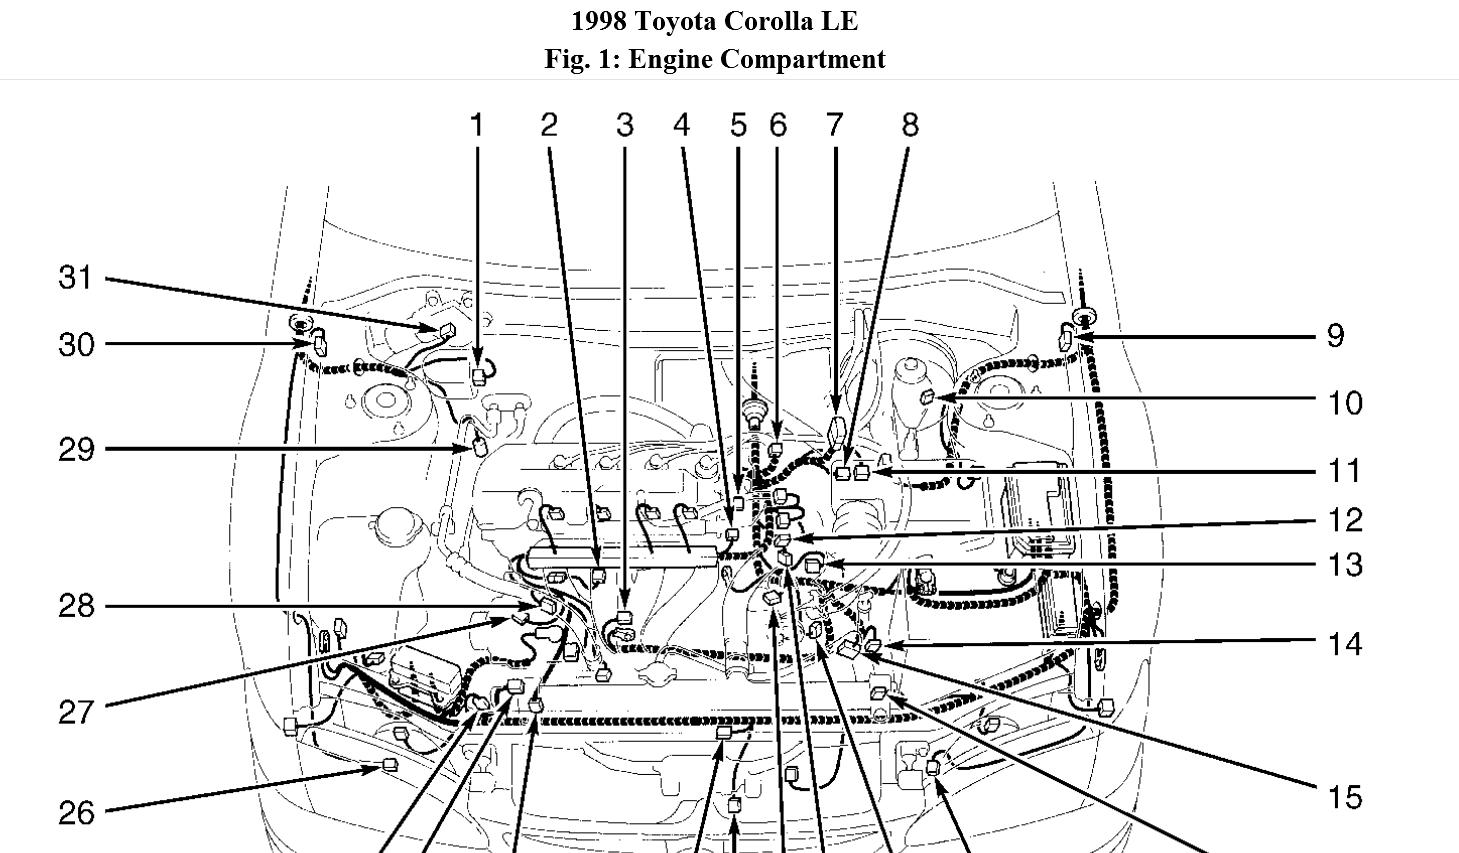 Toyota Corolla Engine Diagram : 29 Wiring Diagram Images